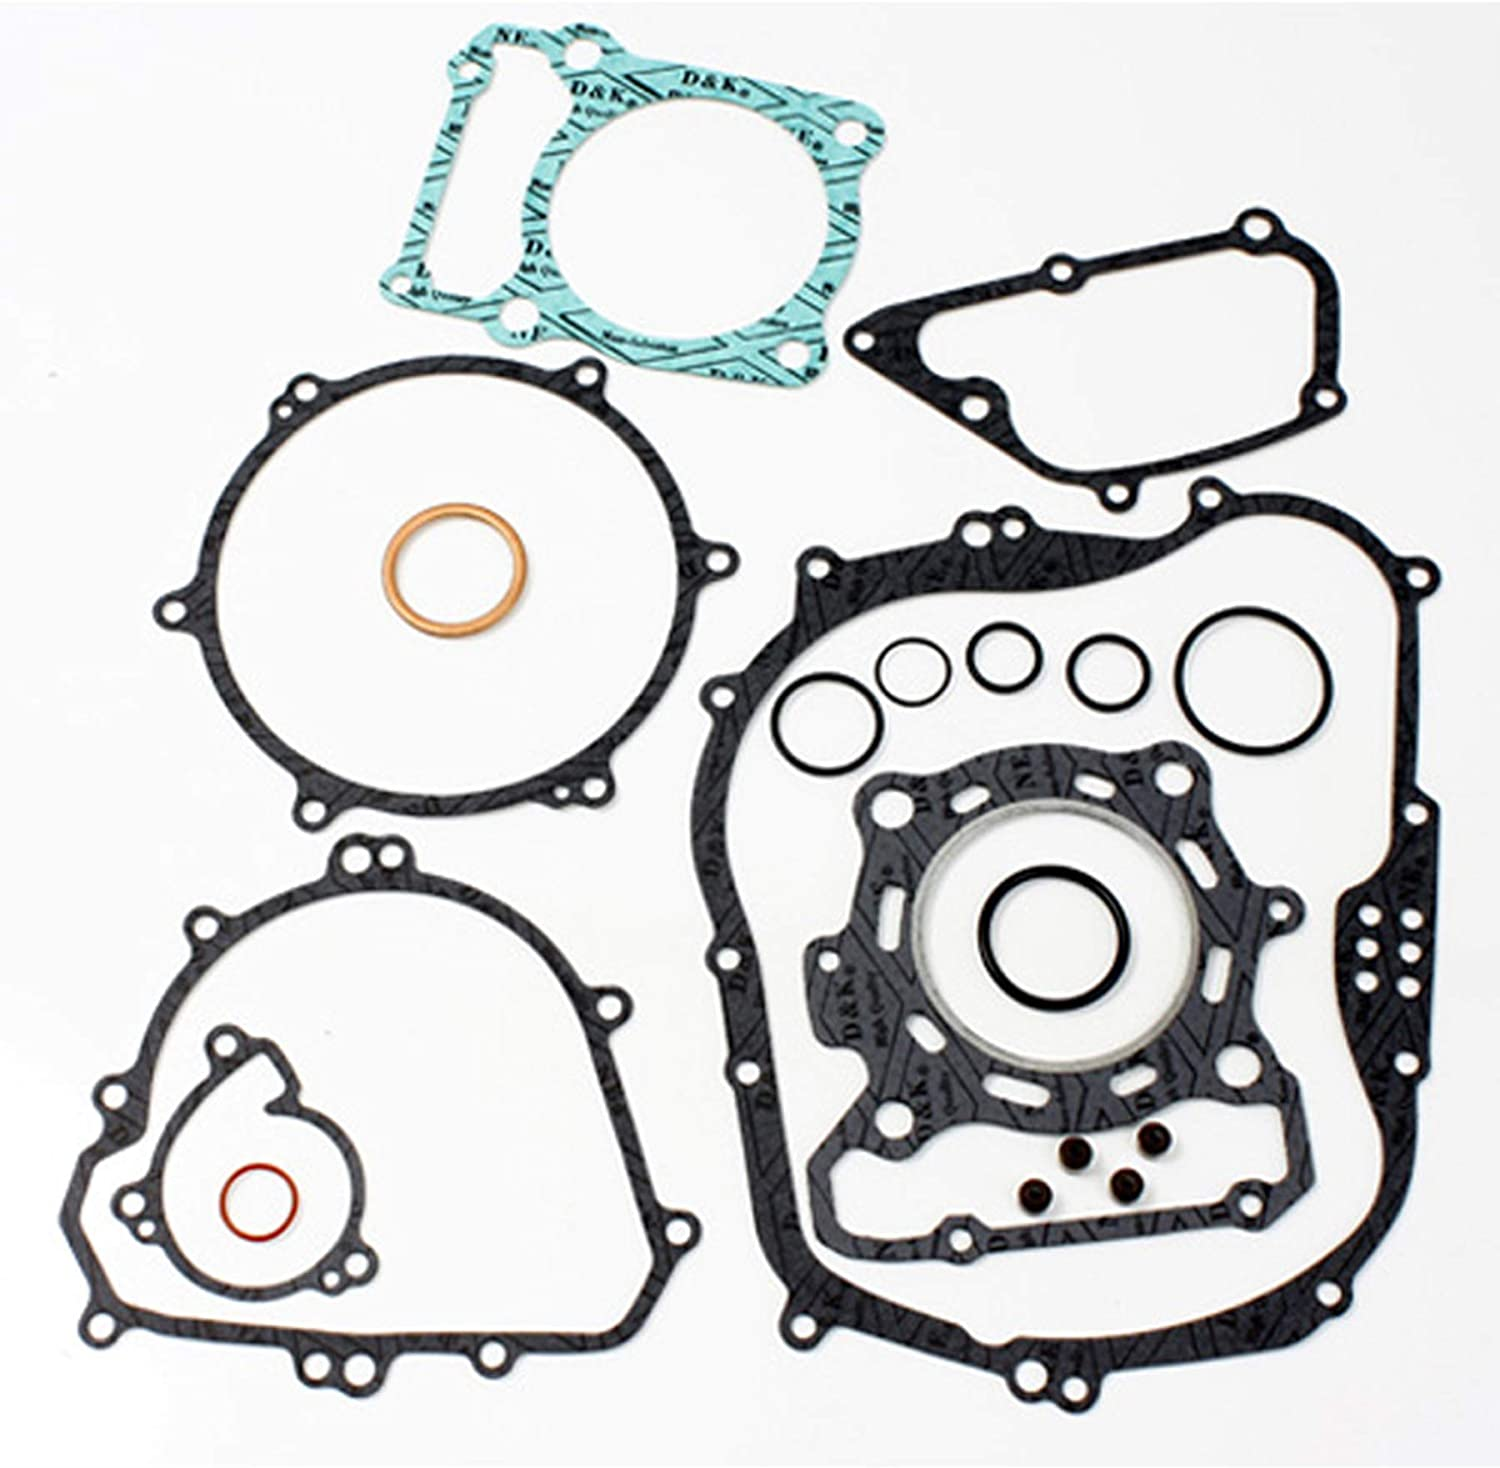 Complete Gasket Kit Fits Max 70% OFF 1994-1996 Popular shop is the lowest price challenge Kawasaki KLX250R